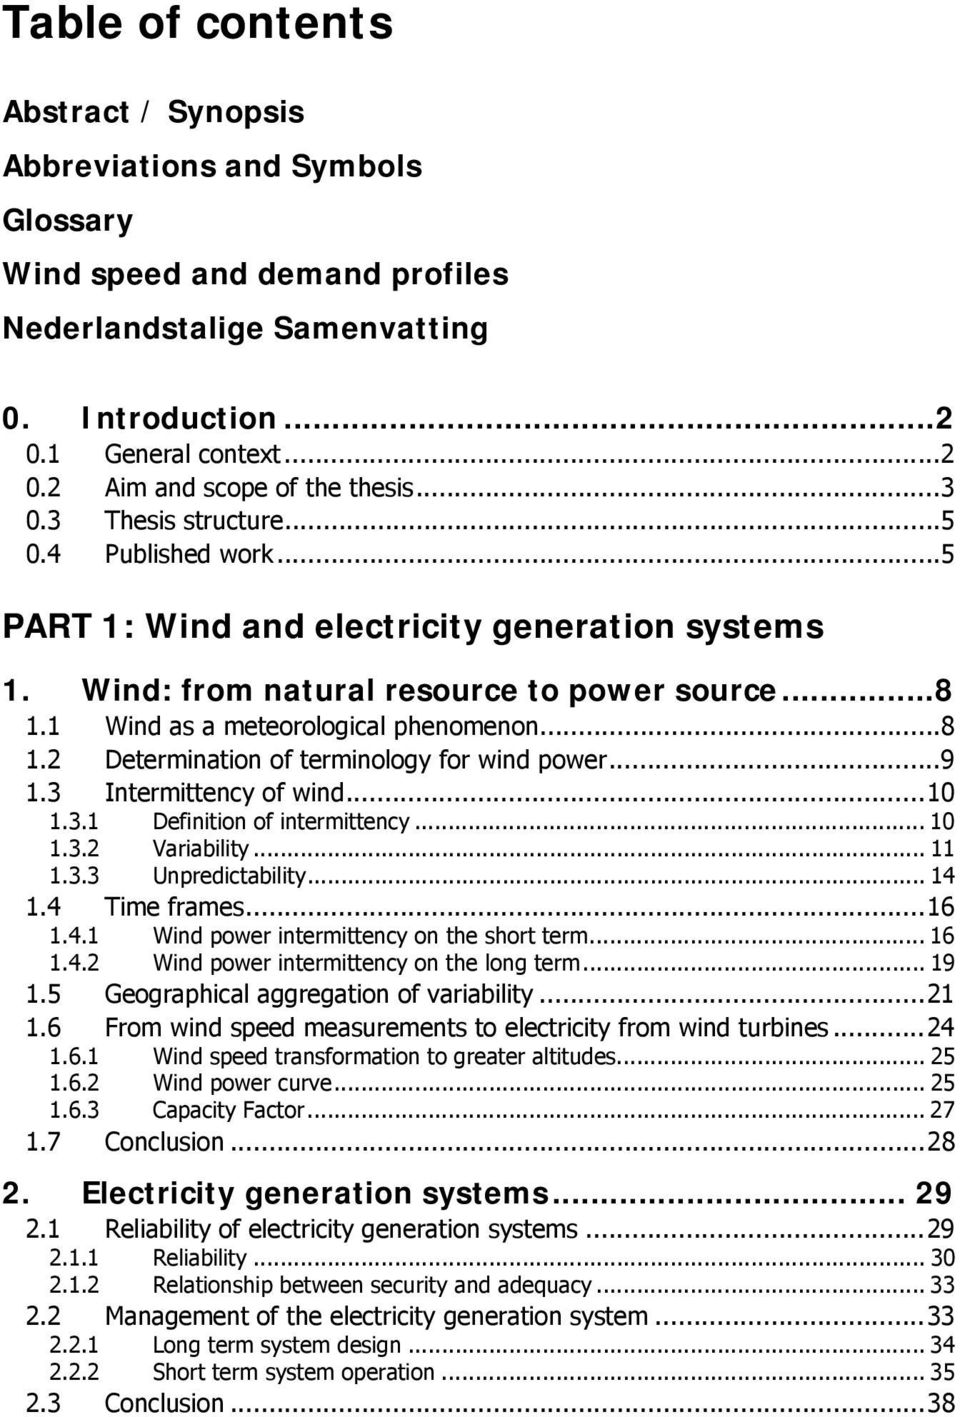 ..9 1.3 Intermittency of wind...10 1.3.1 Definition of intermittency... 10 1.3.2 Variability... 11 1.3.3 Unpredictability... 14 1.4 Time frames...16 1.4.1 Wind power intermittency on the short term.